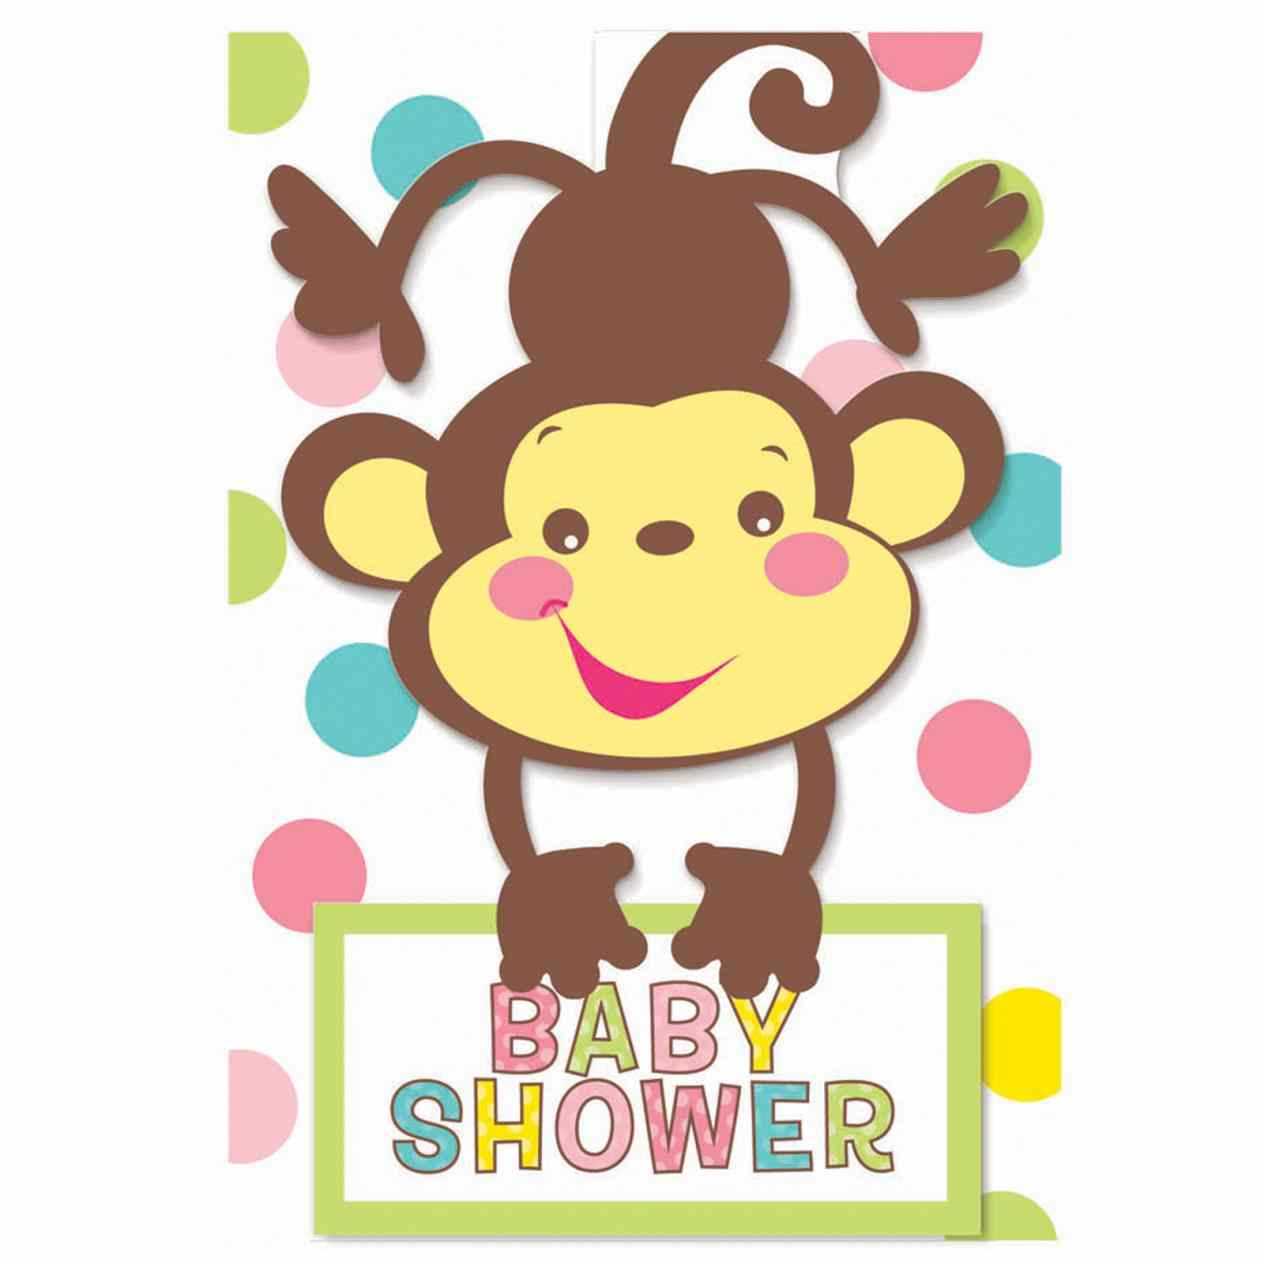 1264x1264 Baby Shower Borders Clip Art Image Collections